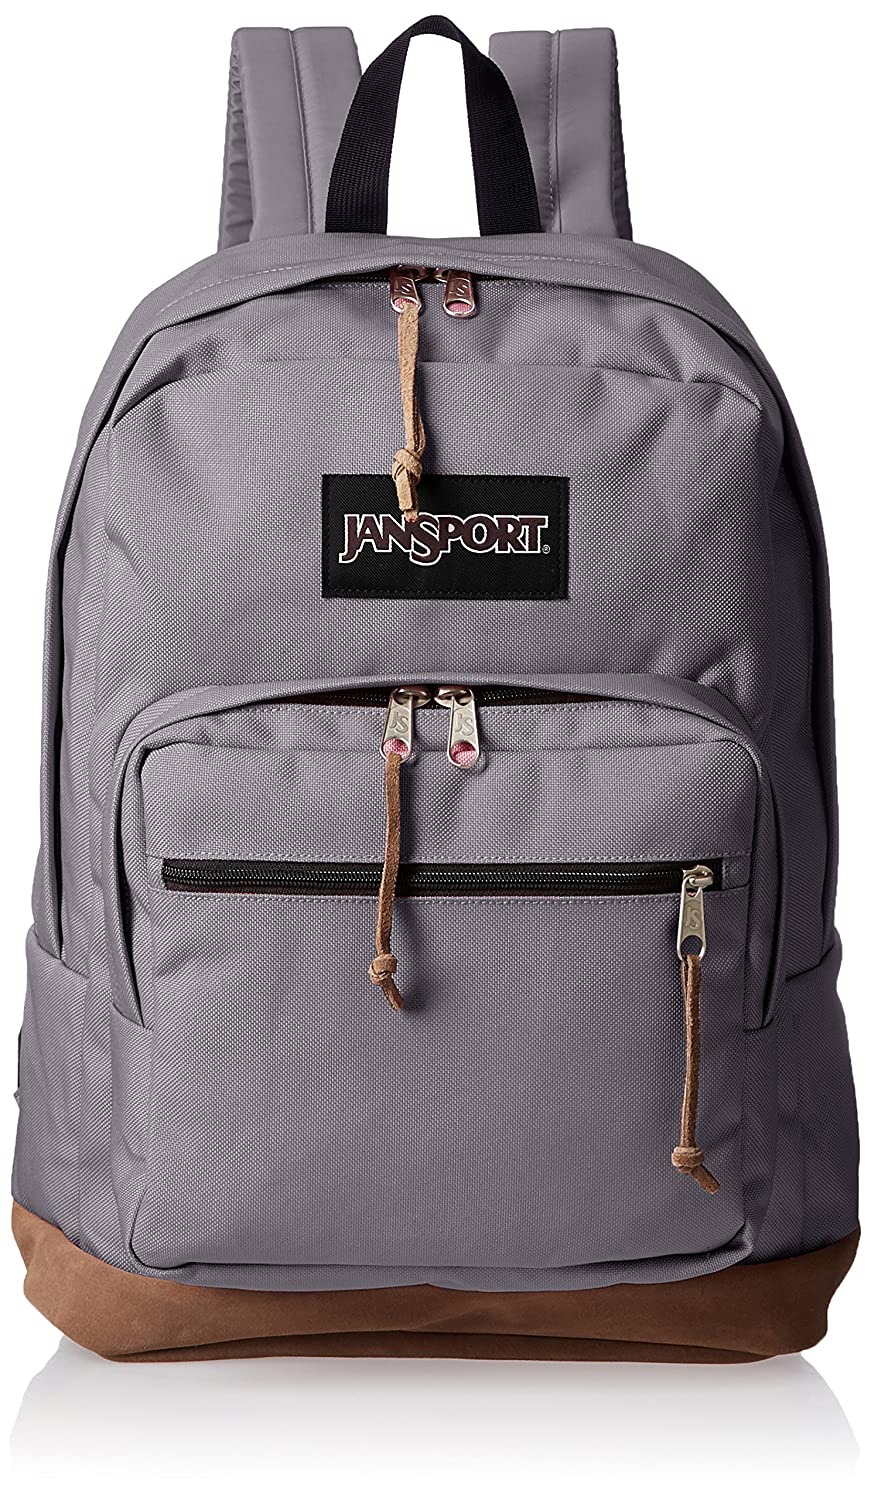 JANSPORT Rucksack Right Pack Originals, 46x33x21 B076Y1MRZD | Deutschland Store